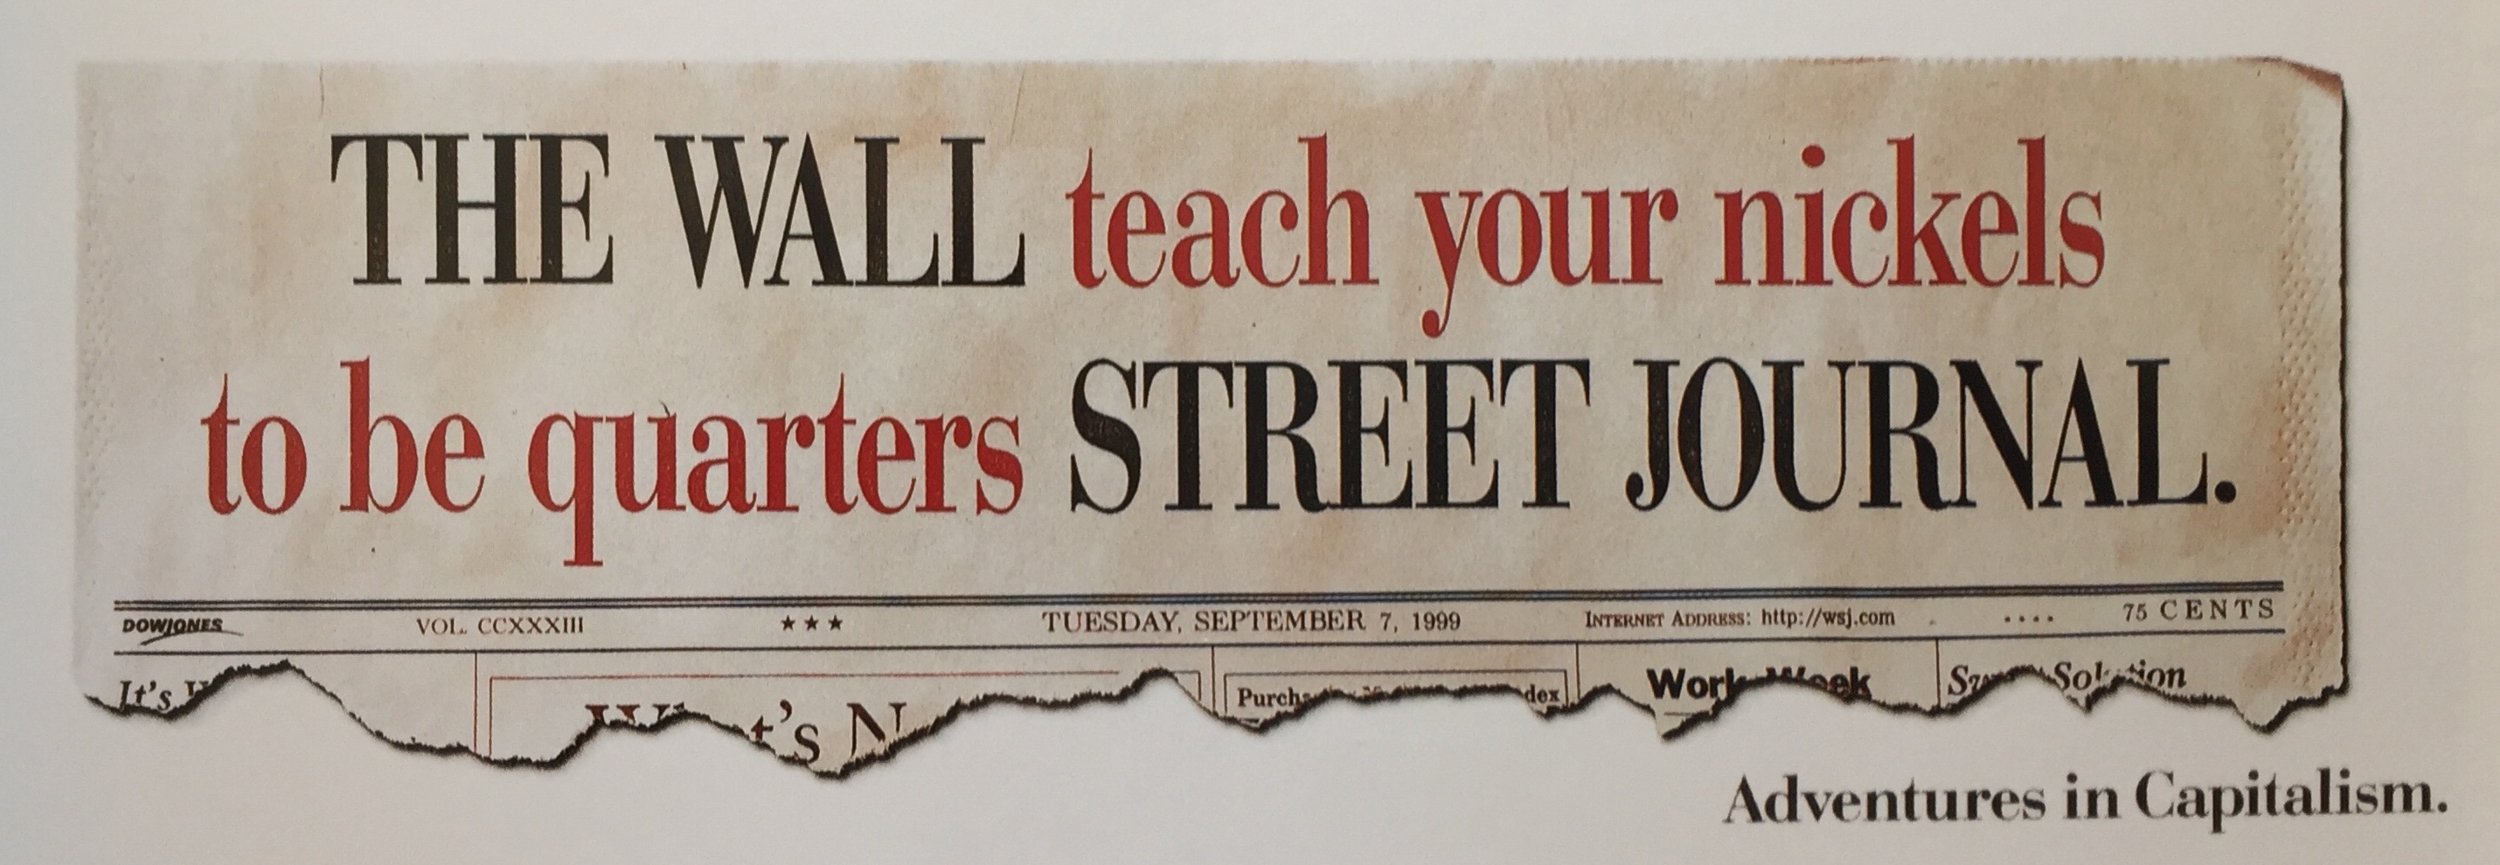 WSJ - Teach your Nickels .png